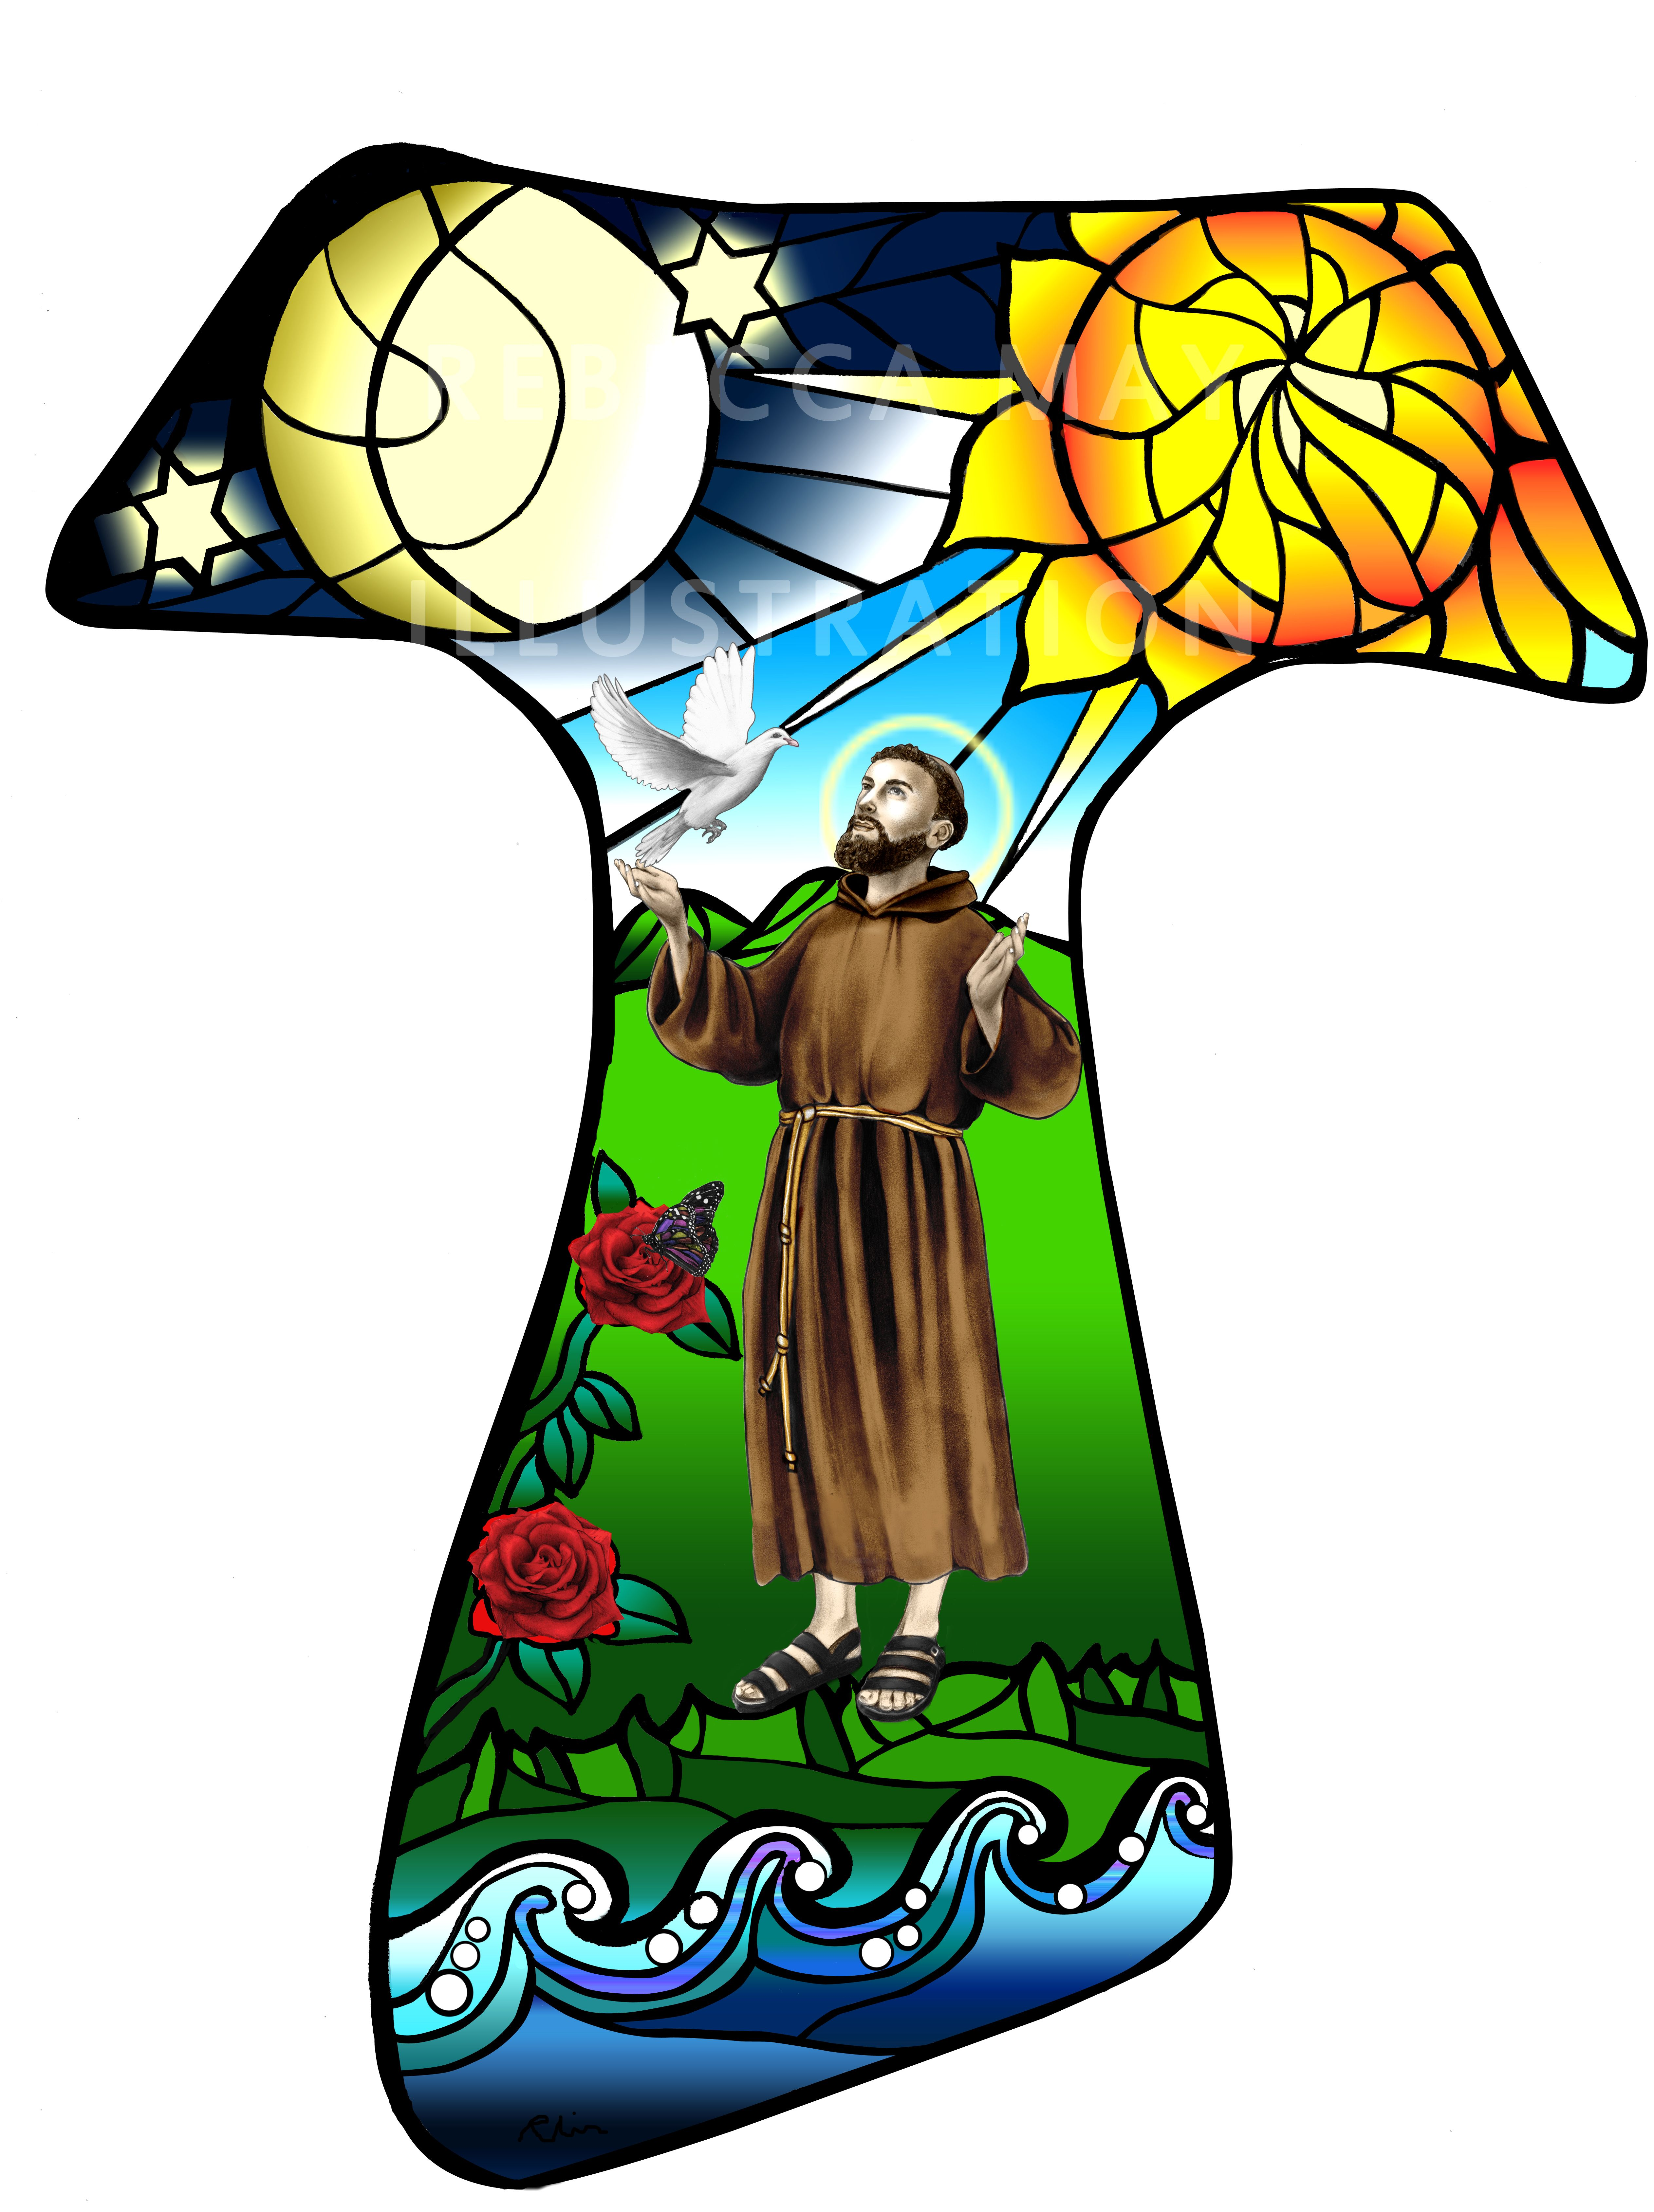 Tau Design Commissioned For A Franciscan Society Sao Francisco